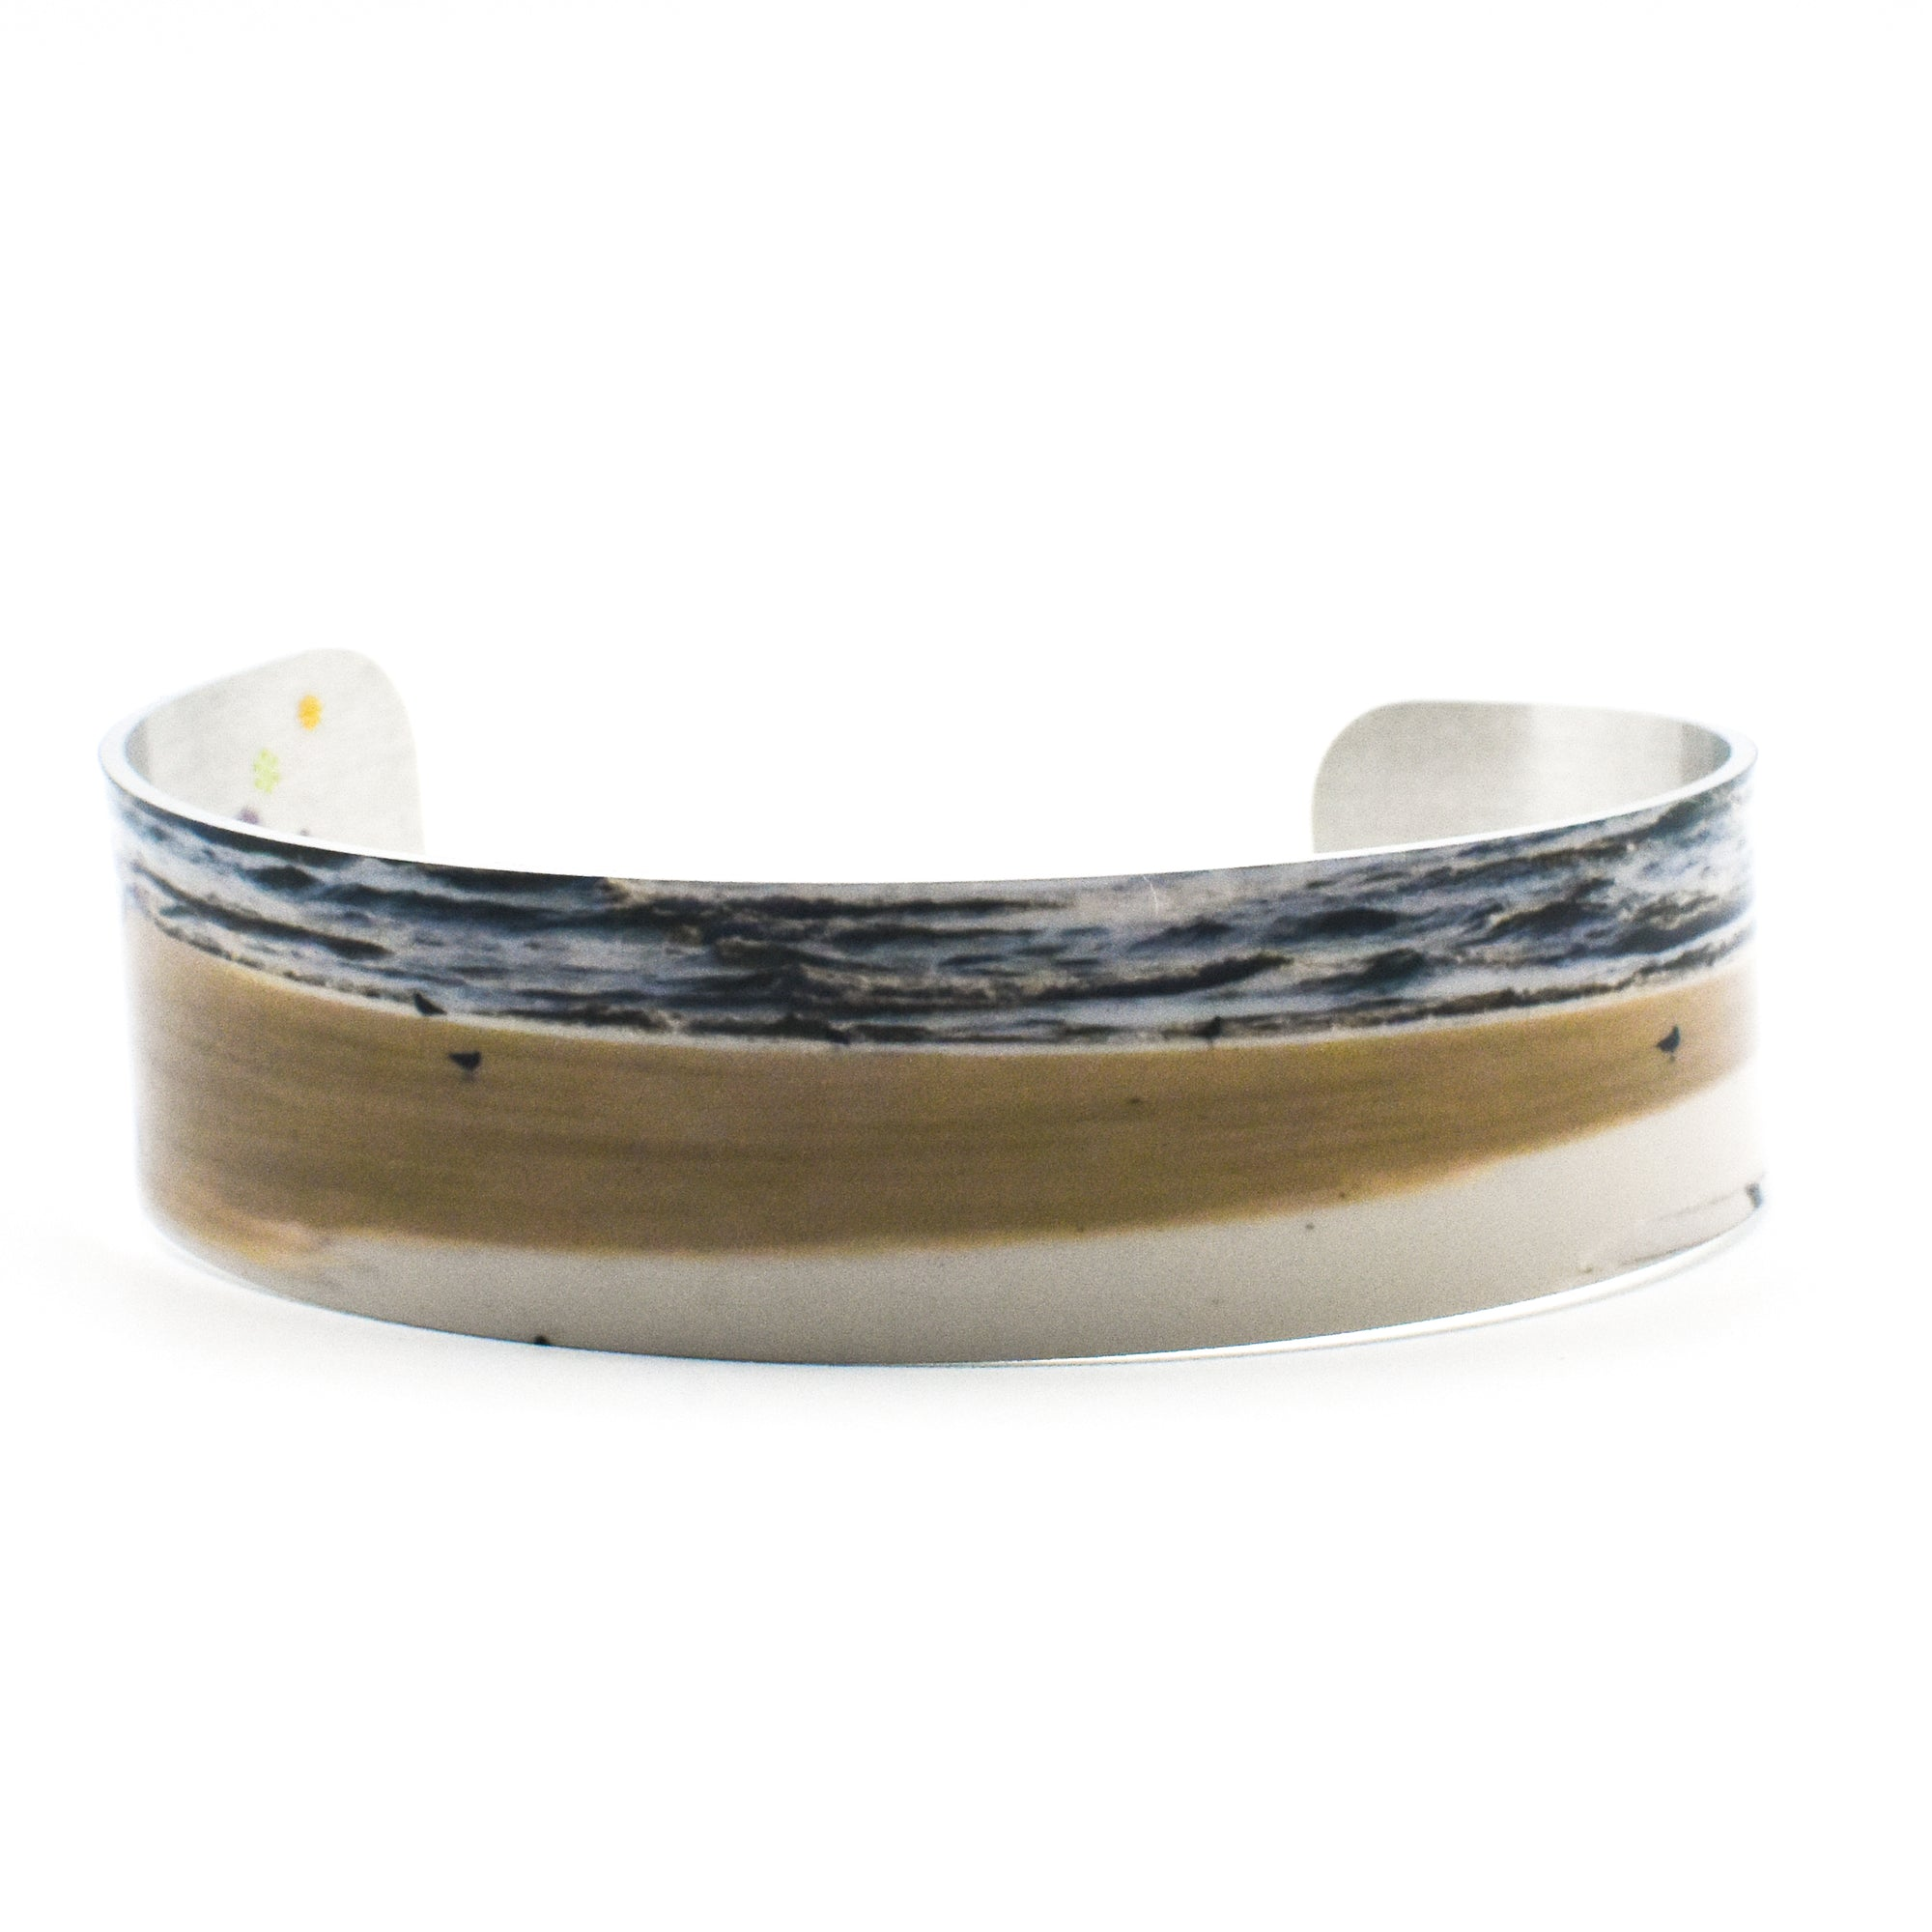 Standard view of Morning Gathering Narrow Cuff Beach Bracelet | Wear the Wonder